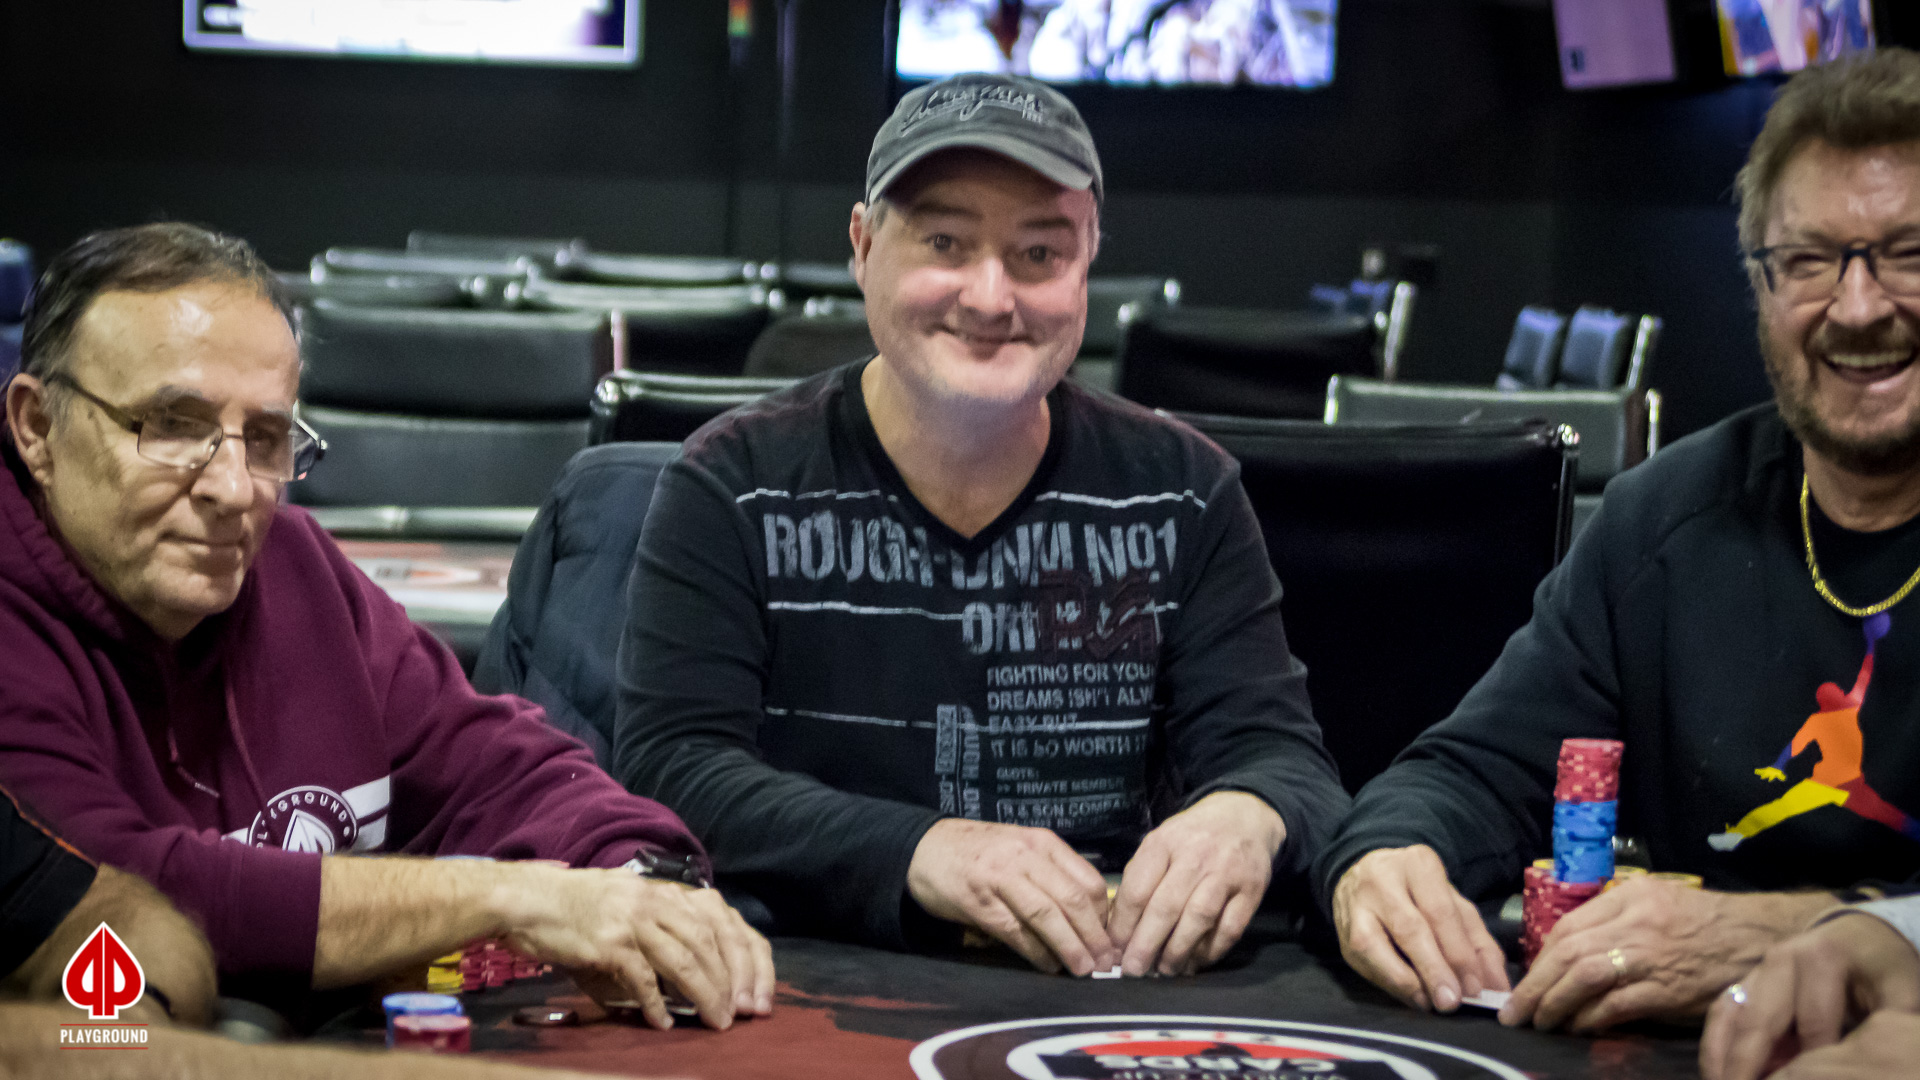 Amirault out in 3rd place ($5,195)